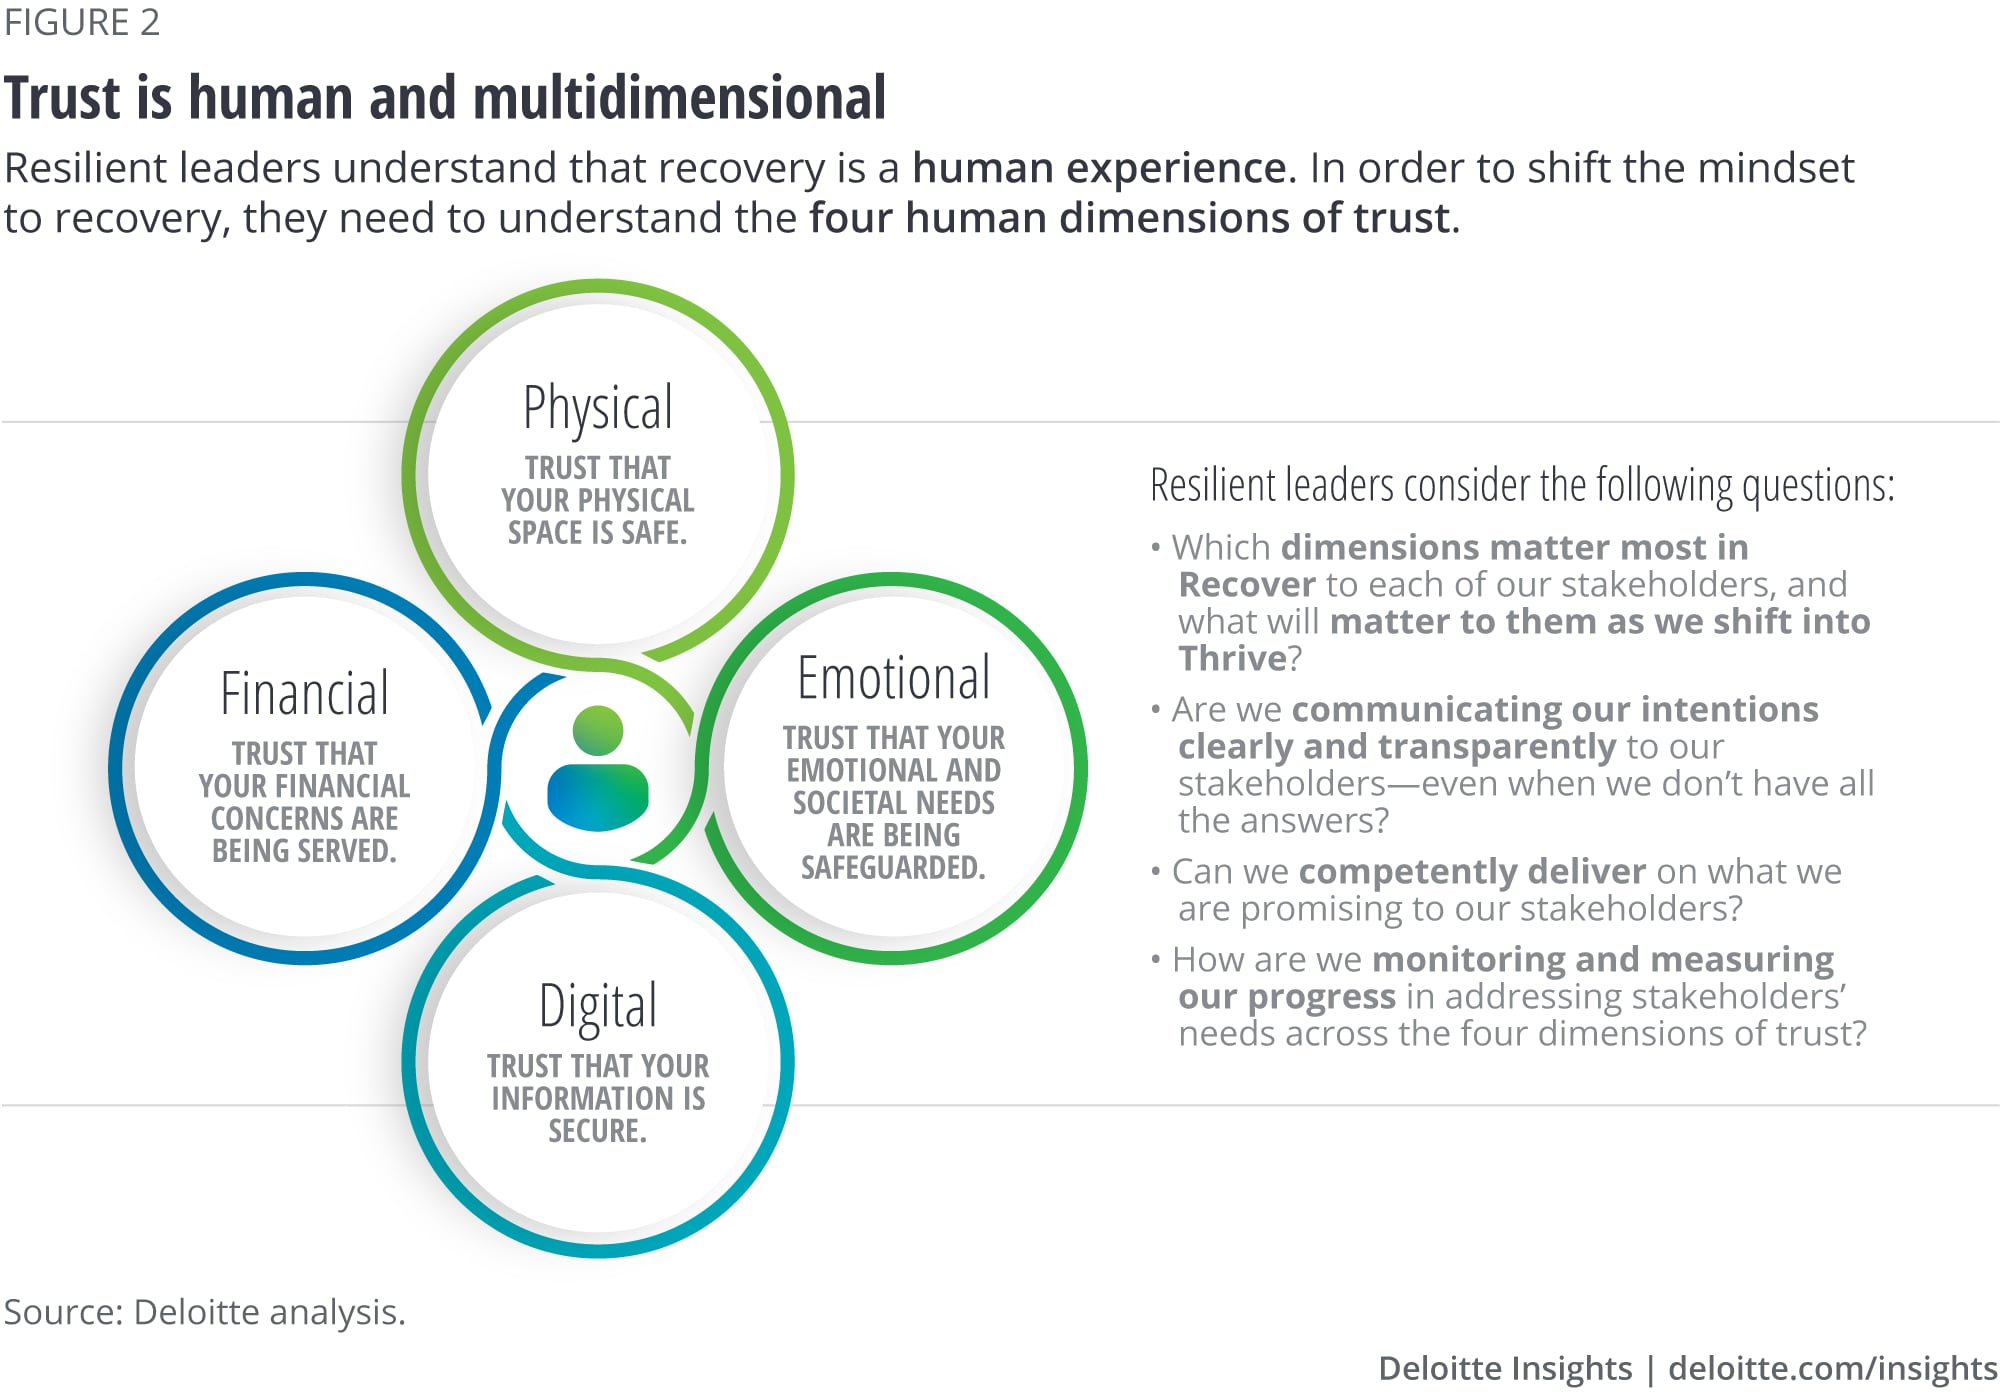 Trust is human and multidimensional